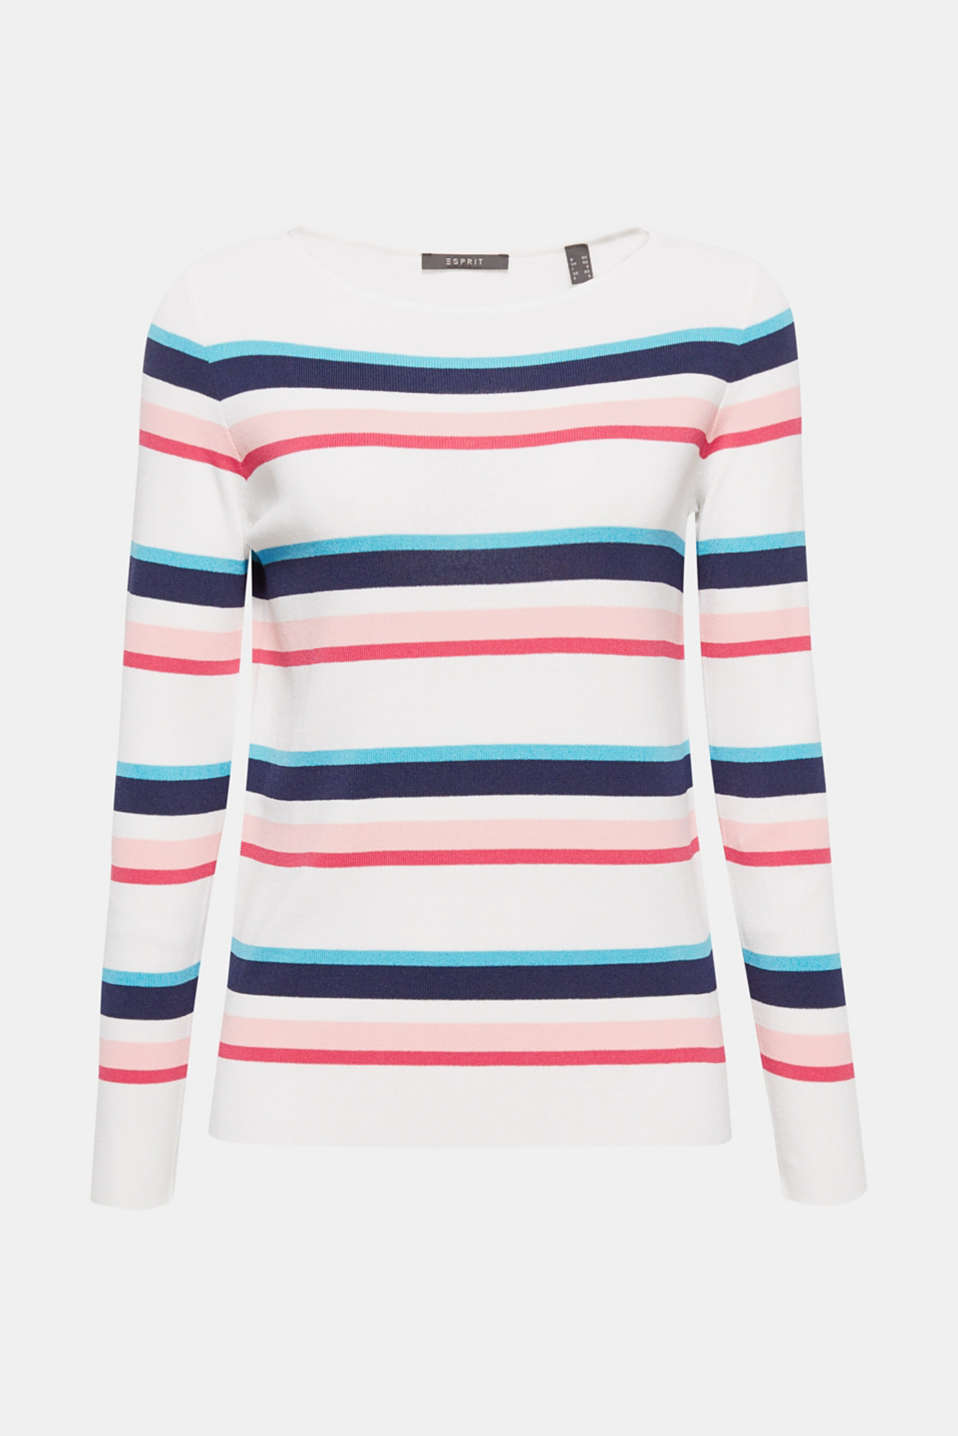 Trendy stripes, a clean cut and cool yarn – what more do you want in a spring jumper?